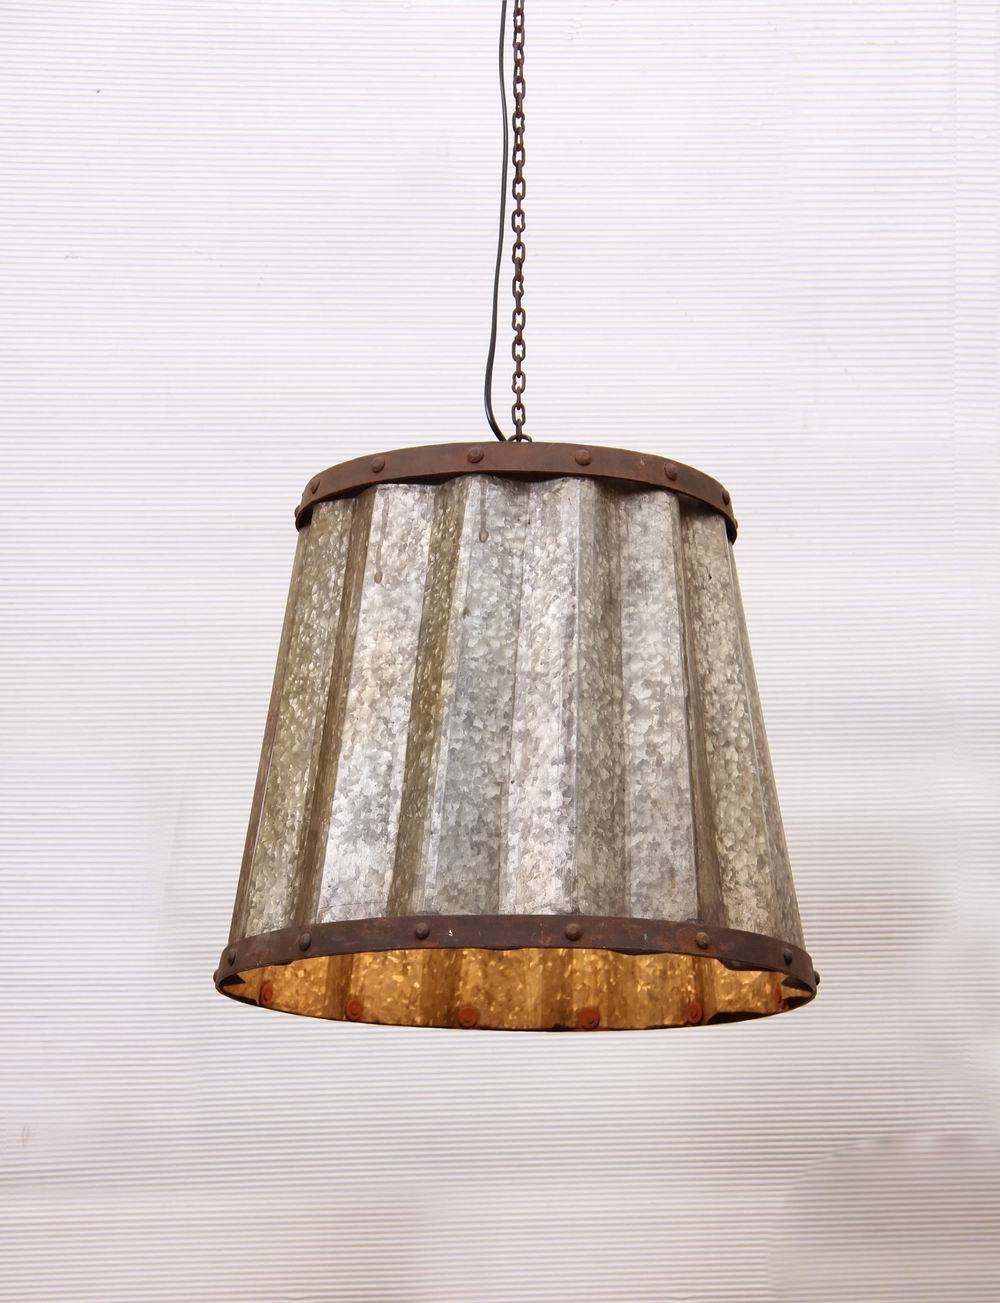 Clink industrial suspension lamp